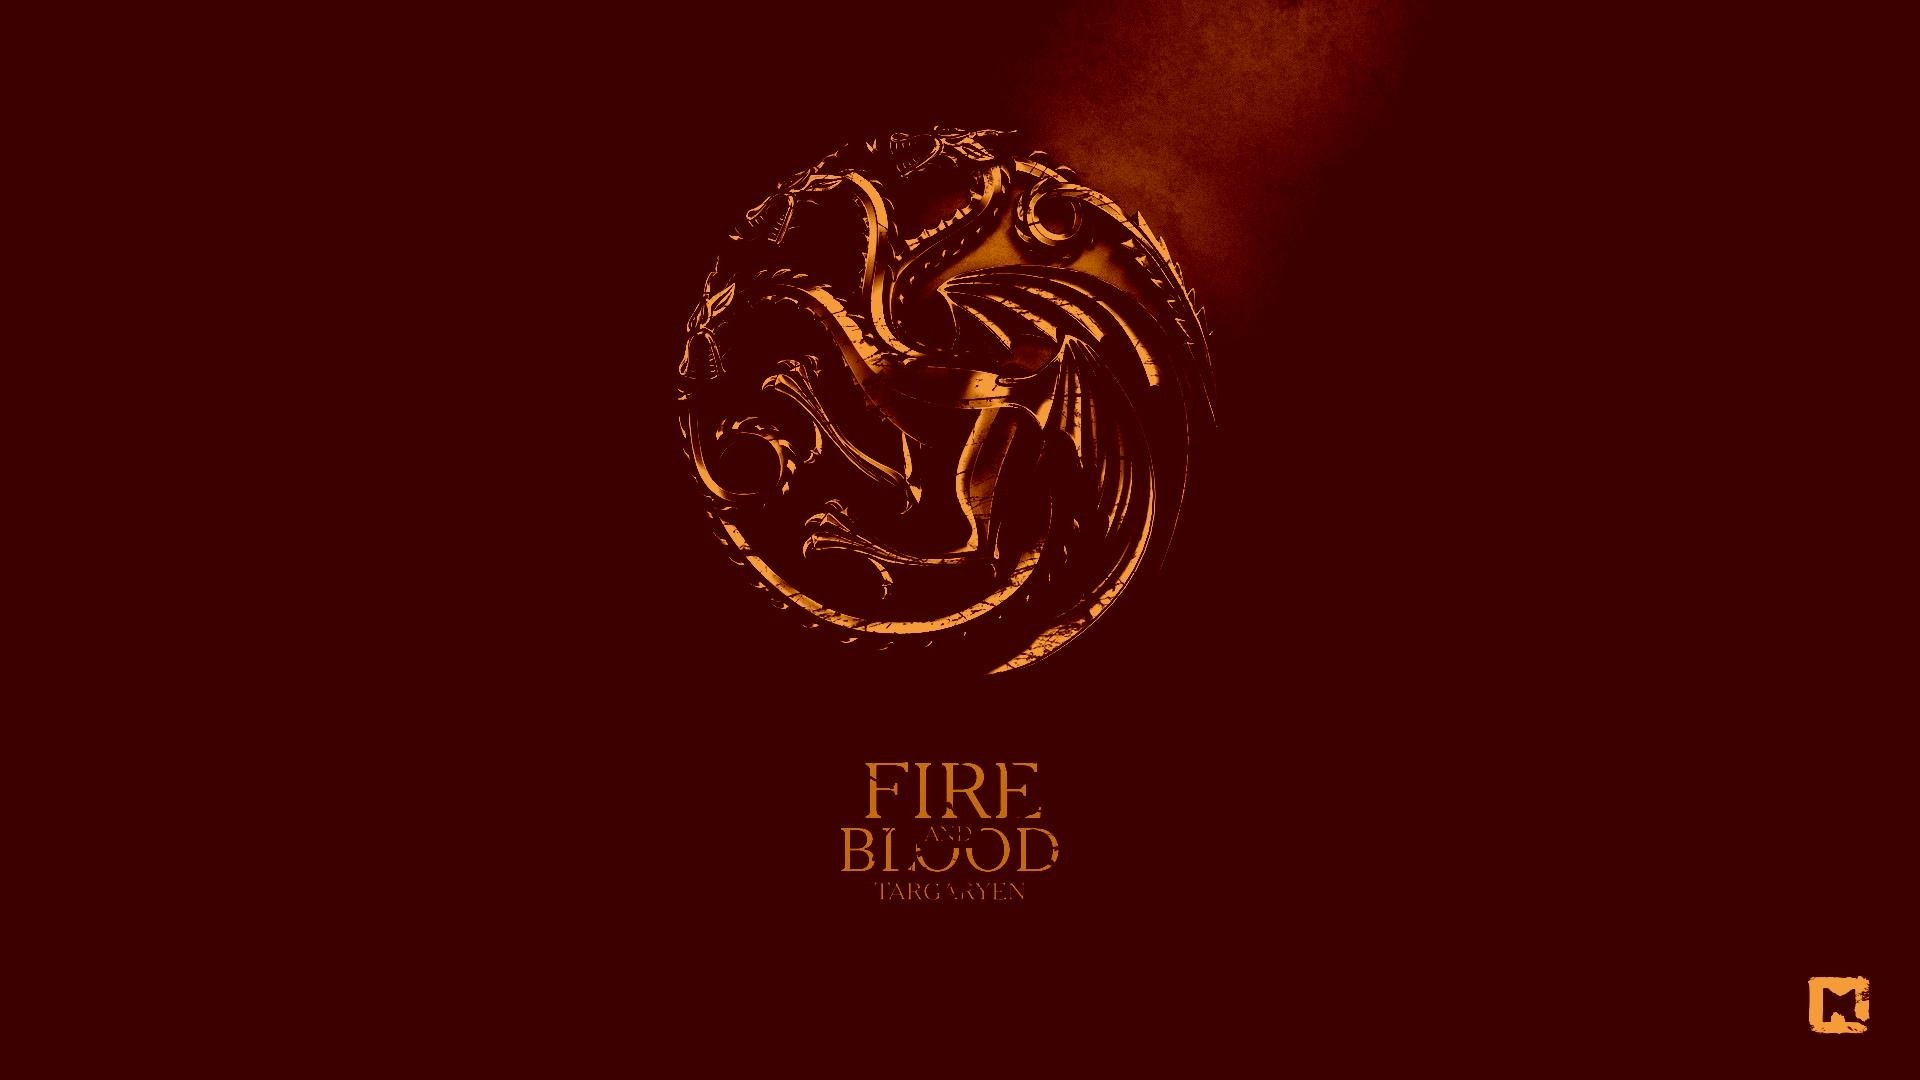 Game Of Thrones, House Targaryen, Dragon, Sigils, Red Wallpapers HD /  Desktop and Mobile Backgrounds